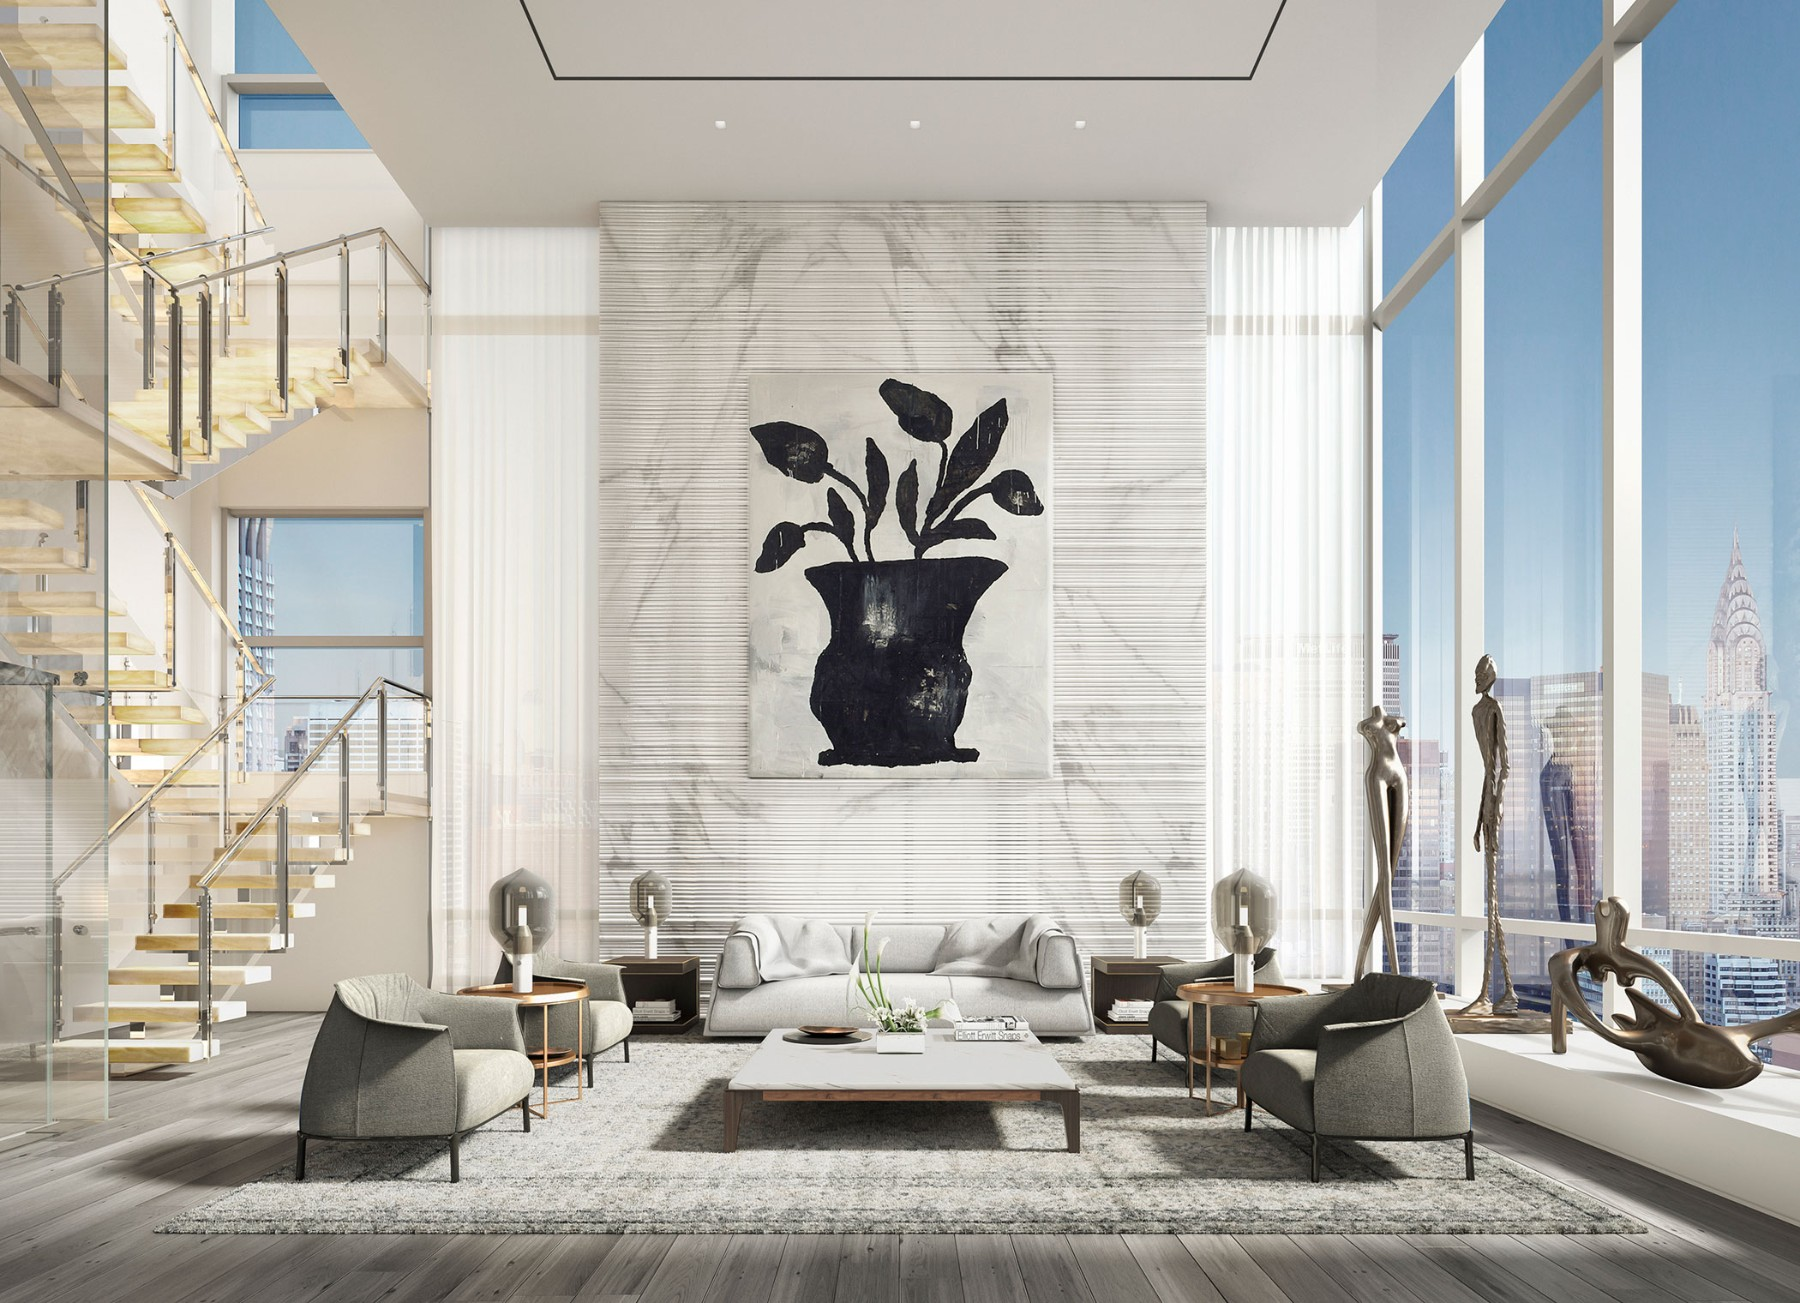 172 Madison Ave Le Penthouse, New York, NY 10016